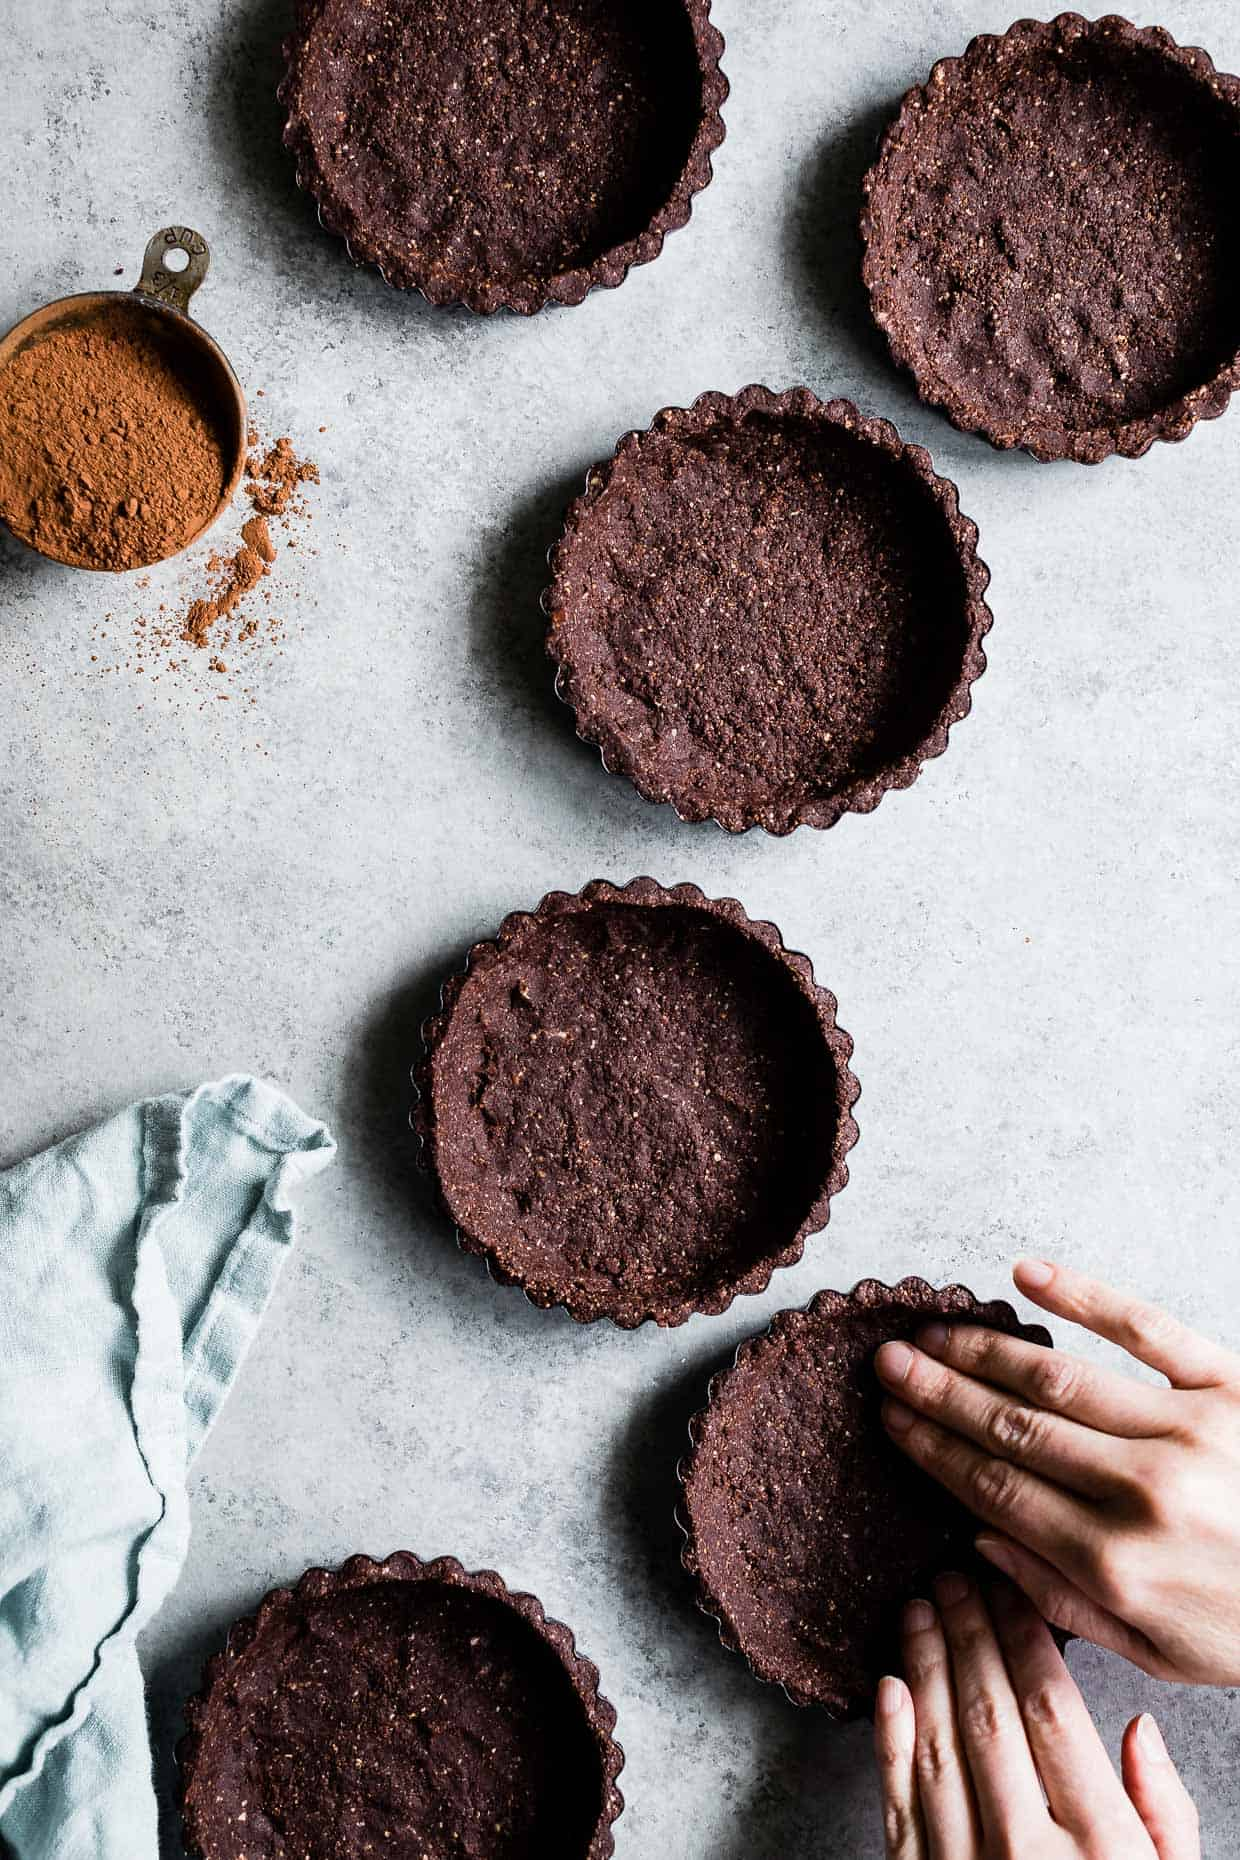 Gluten-Free Chocolate Tart Crusts